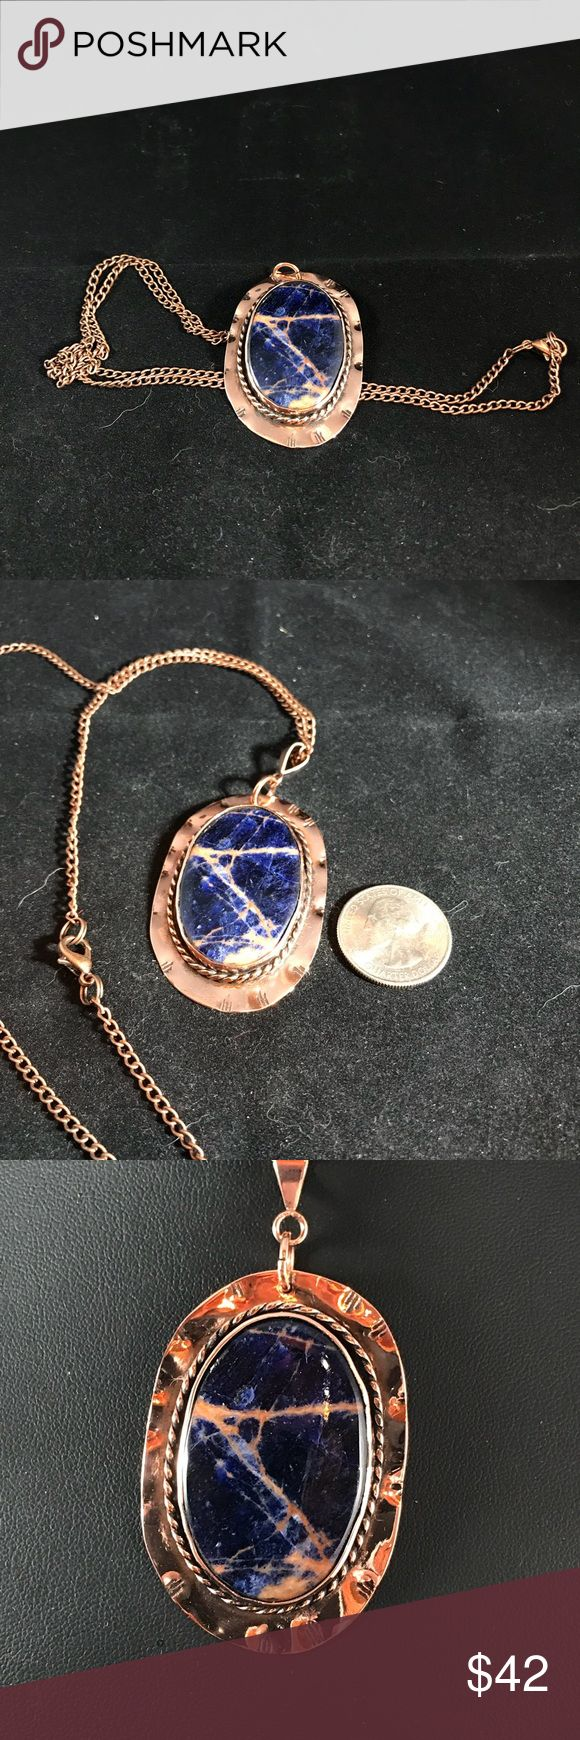 """Sodalite 40x30mm Cabochon Copper Necklace B-1-31 Handmade Copper setting Pendant with a beautiful natural Sodalite 40mm x 30mm Cabochon. 24"""" Matching Chain is included. I have signed this creation. Handmade by HM Simon Jewelry Necklaces"""